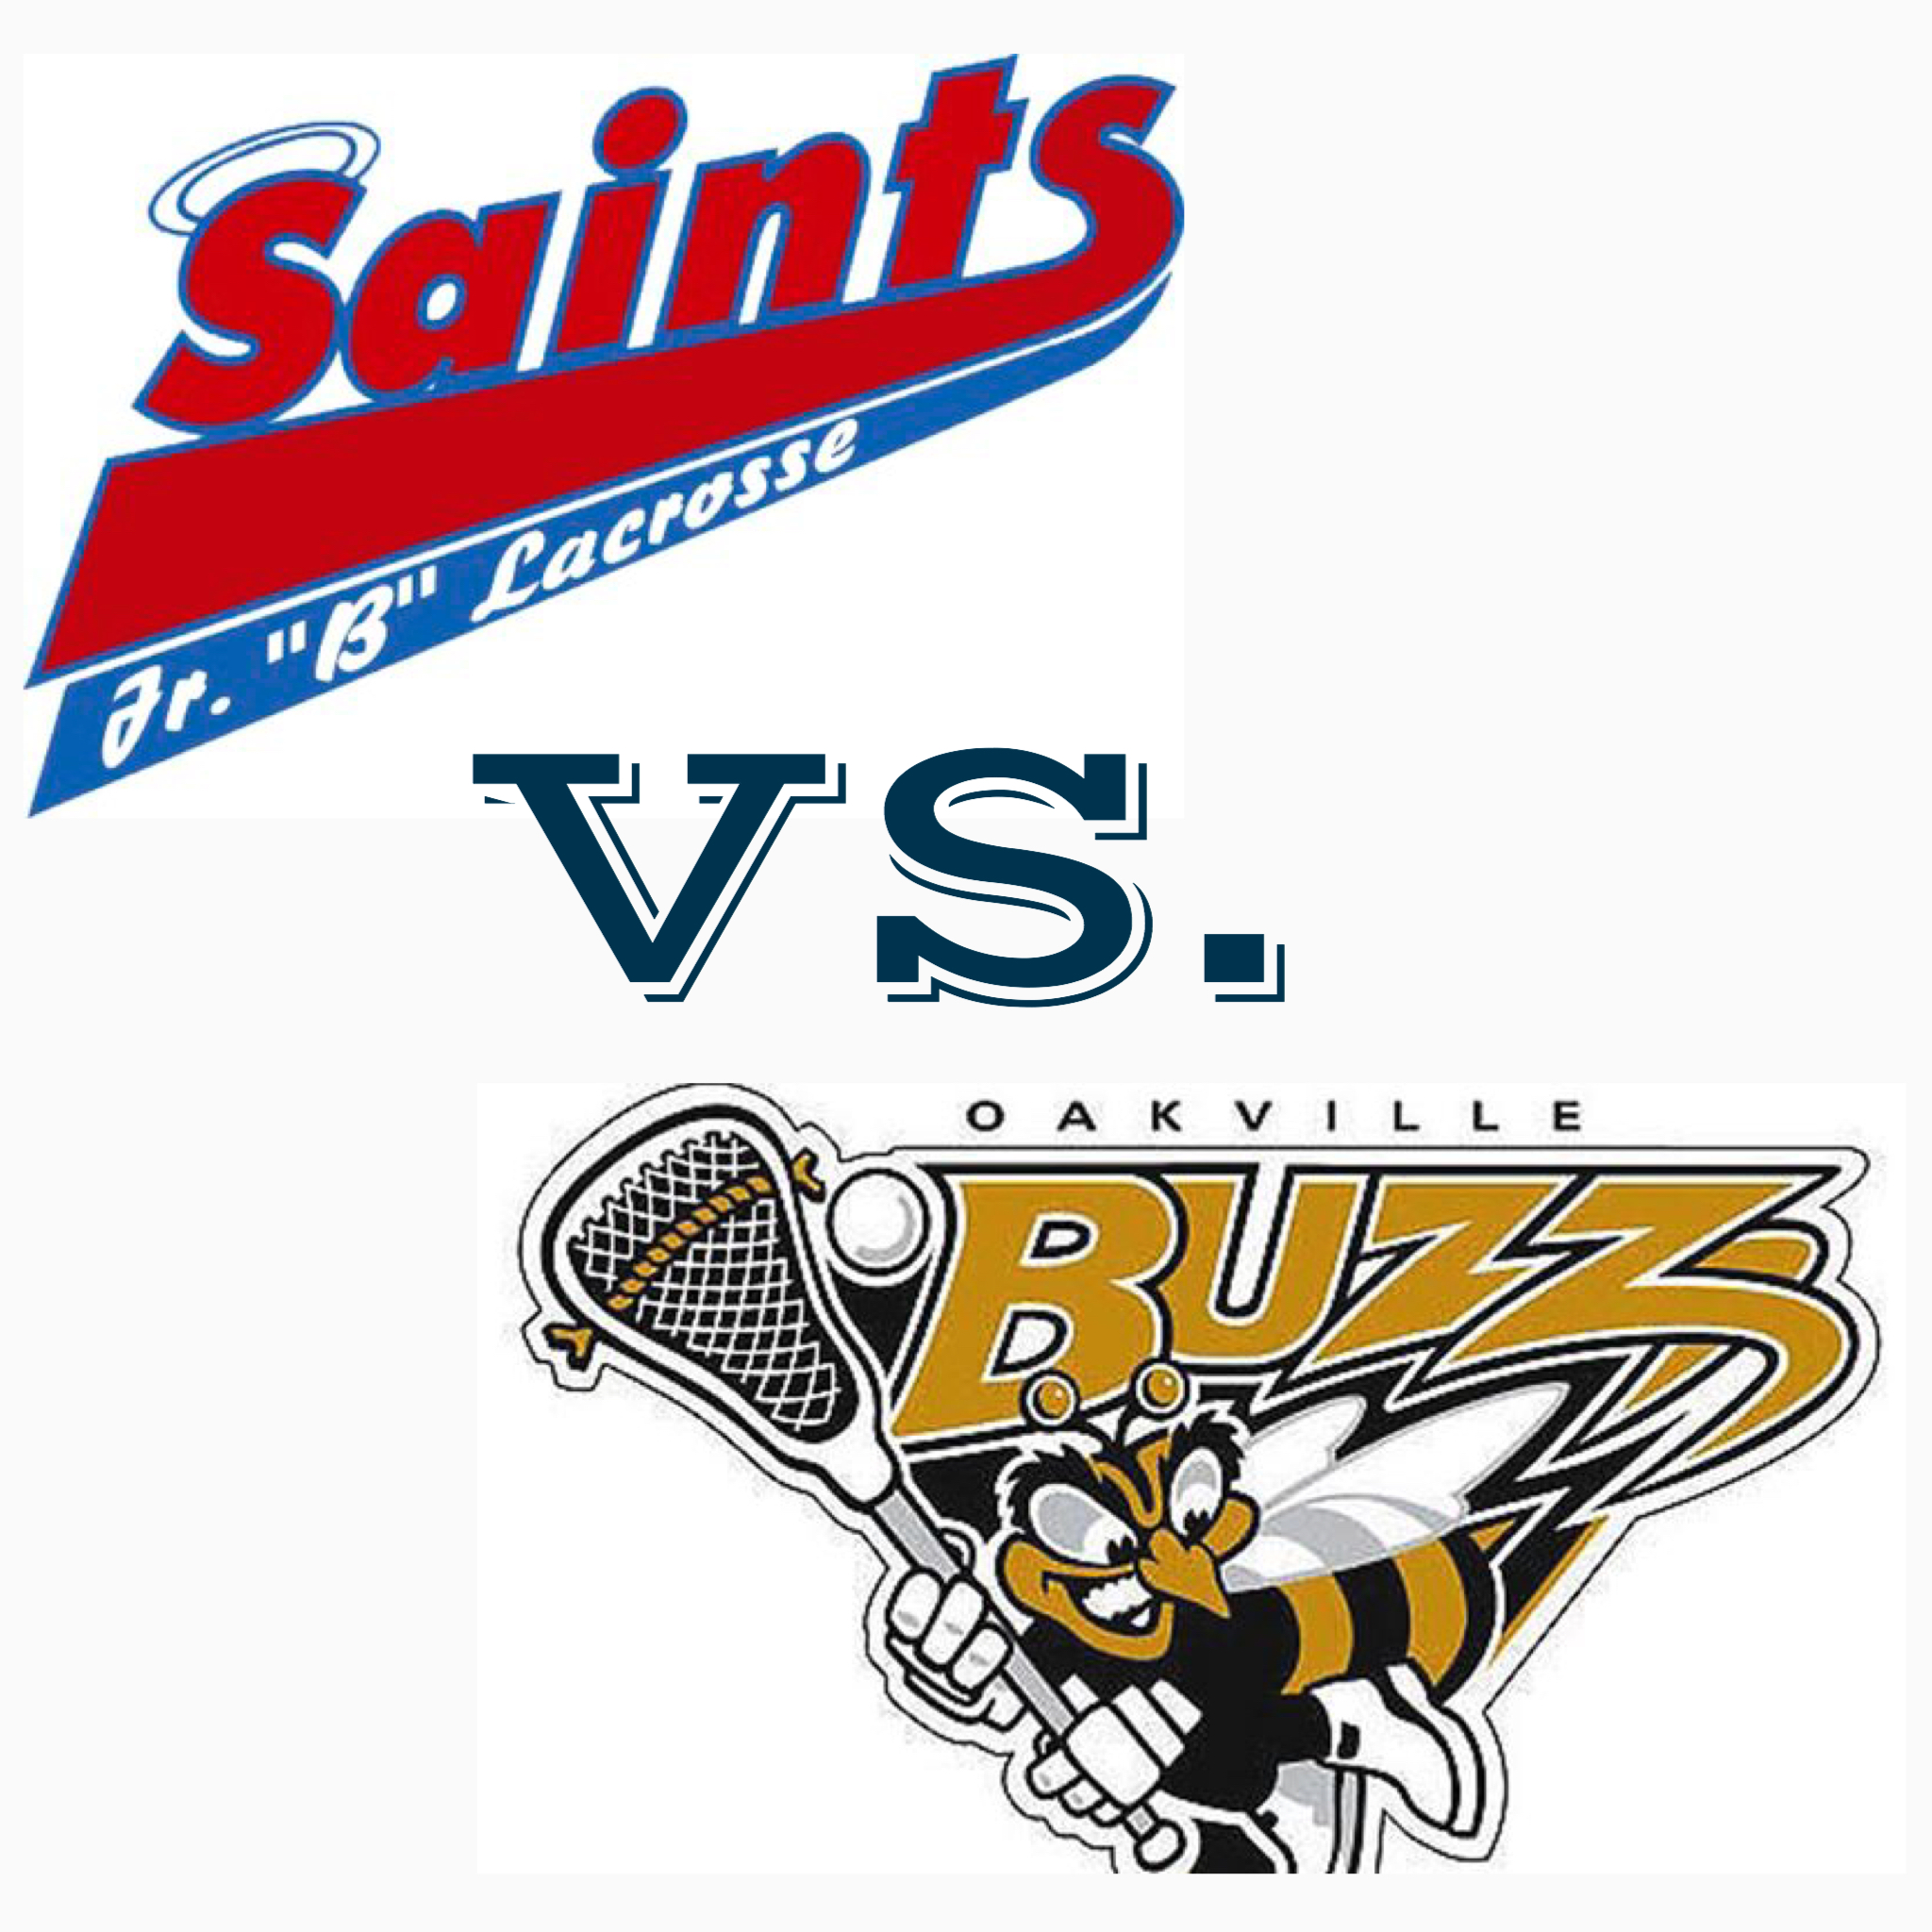 Saints Vs. Buzz.jpg